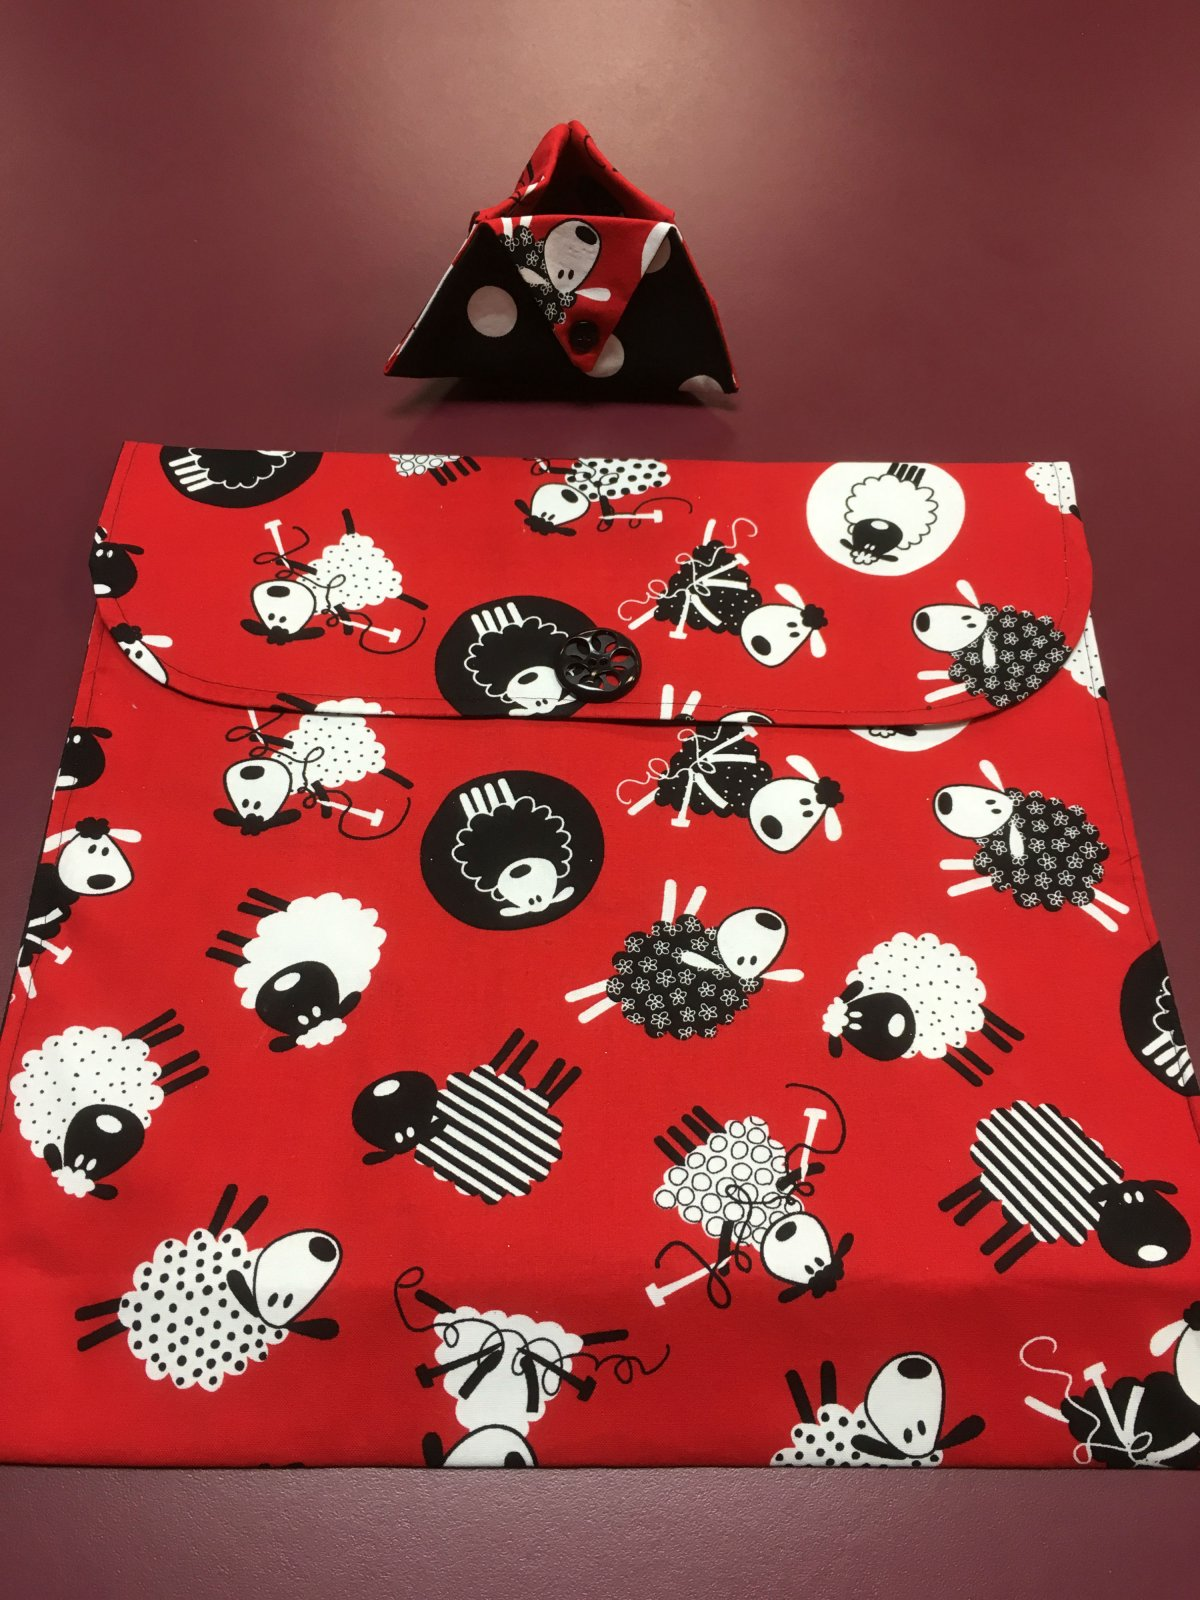 Project bag and ort bag - Red with Sheep 14 x 13.25